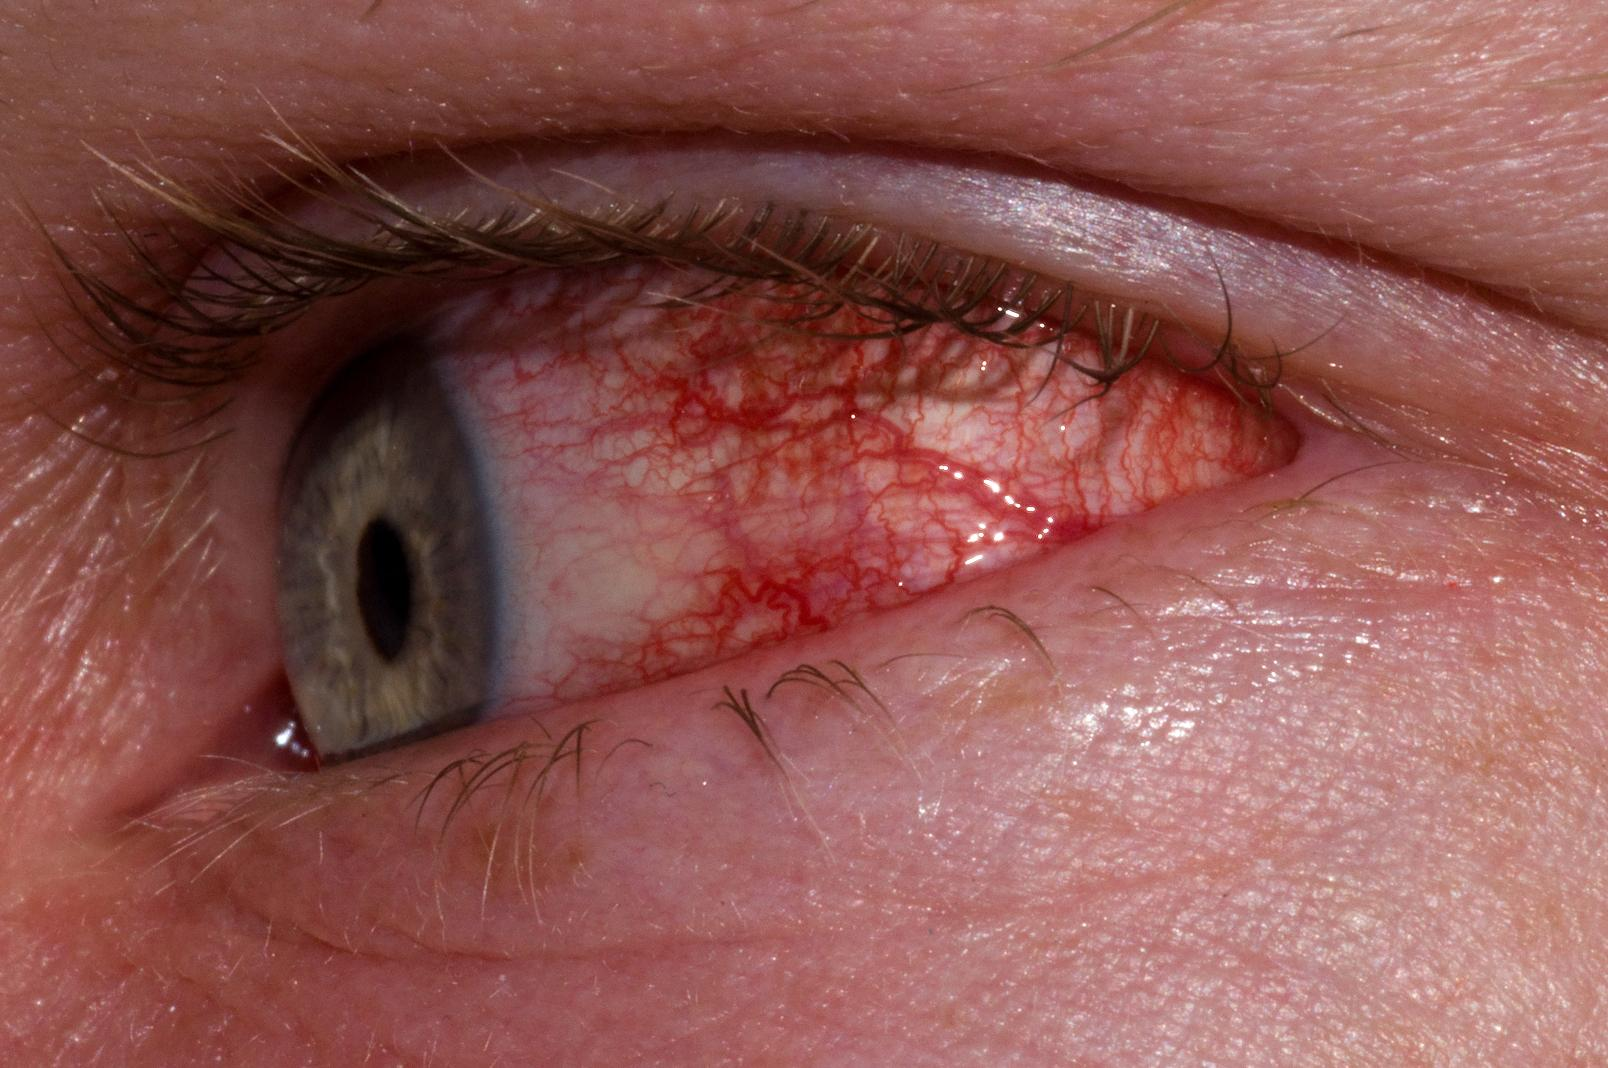 Conjunctivitis (Pinkeye) Causes, Symptoms, and Treatments ...